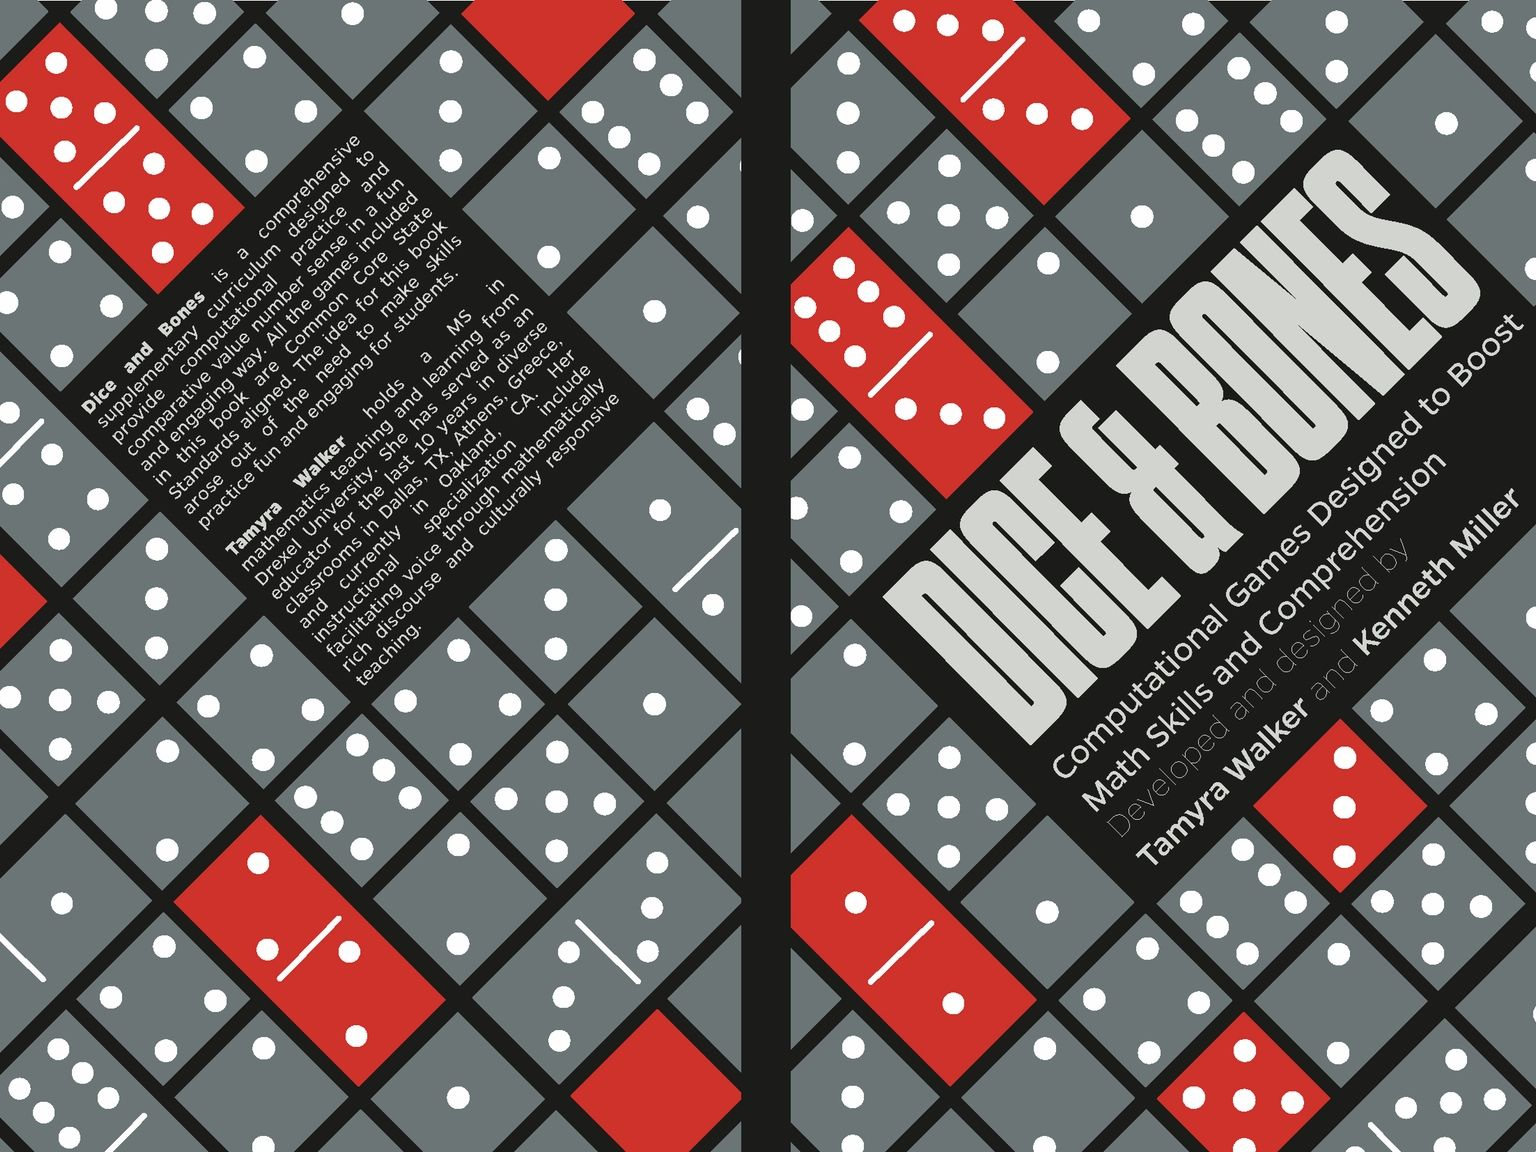 Dice Domino Google Search (With images) Typography